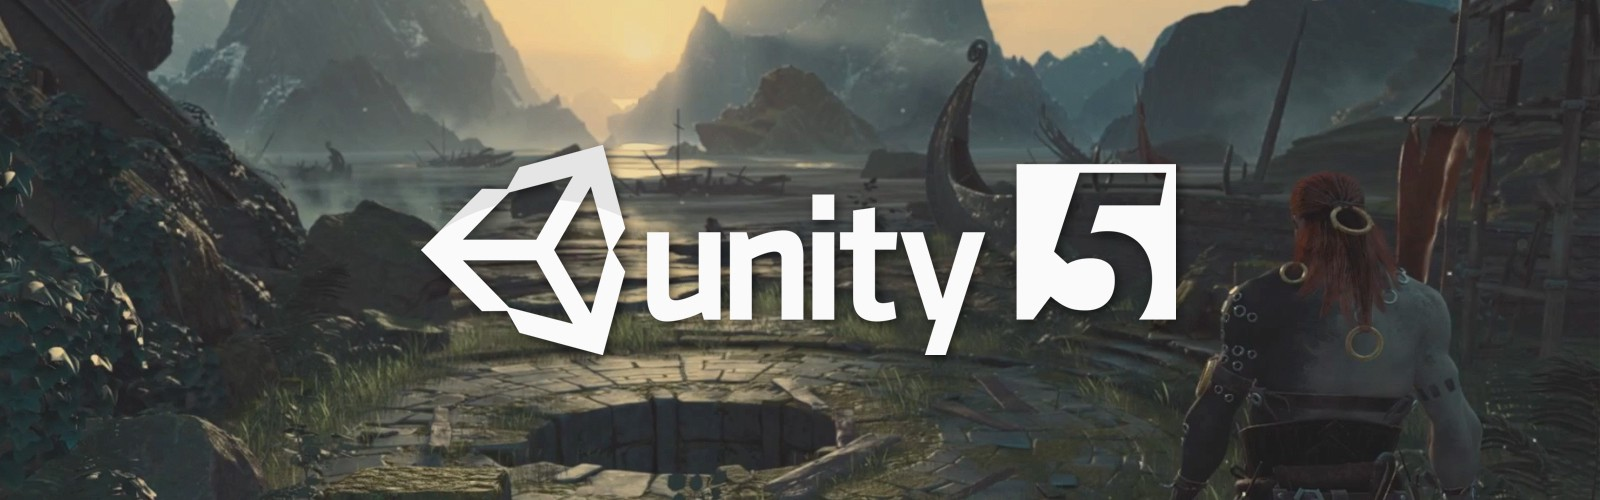 how to get text in unity